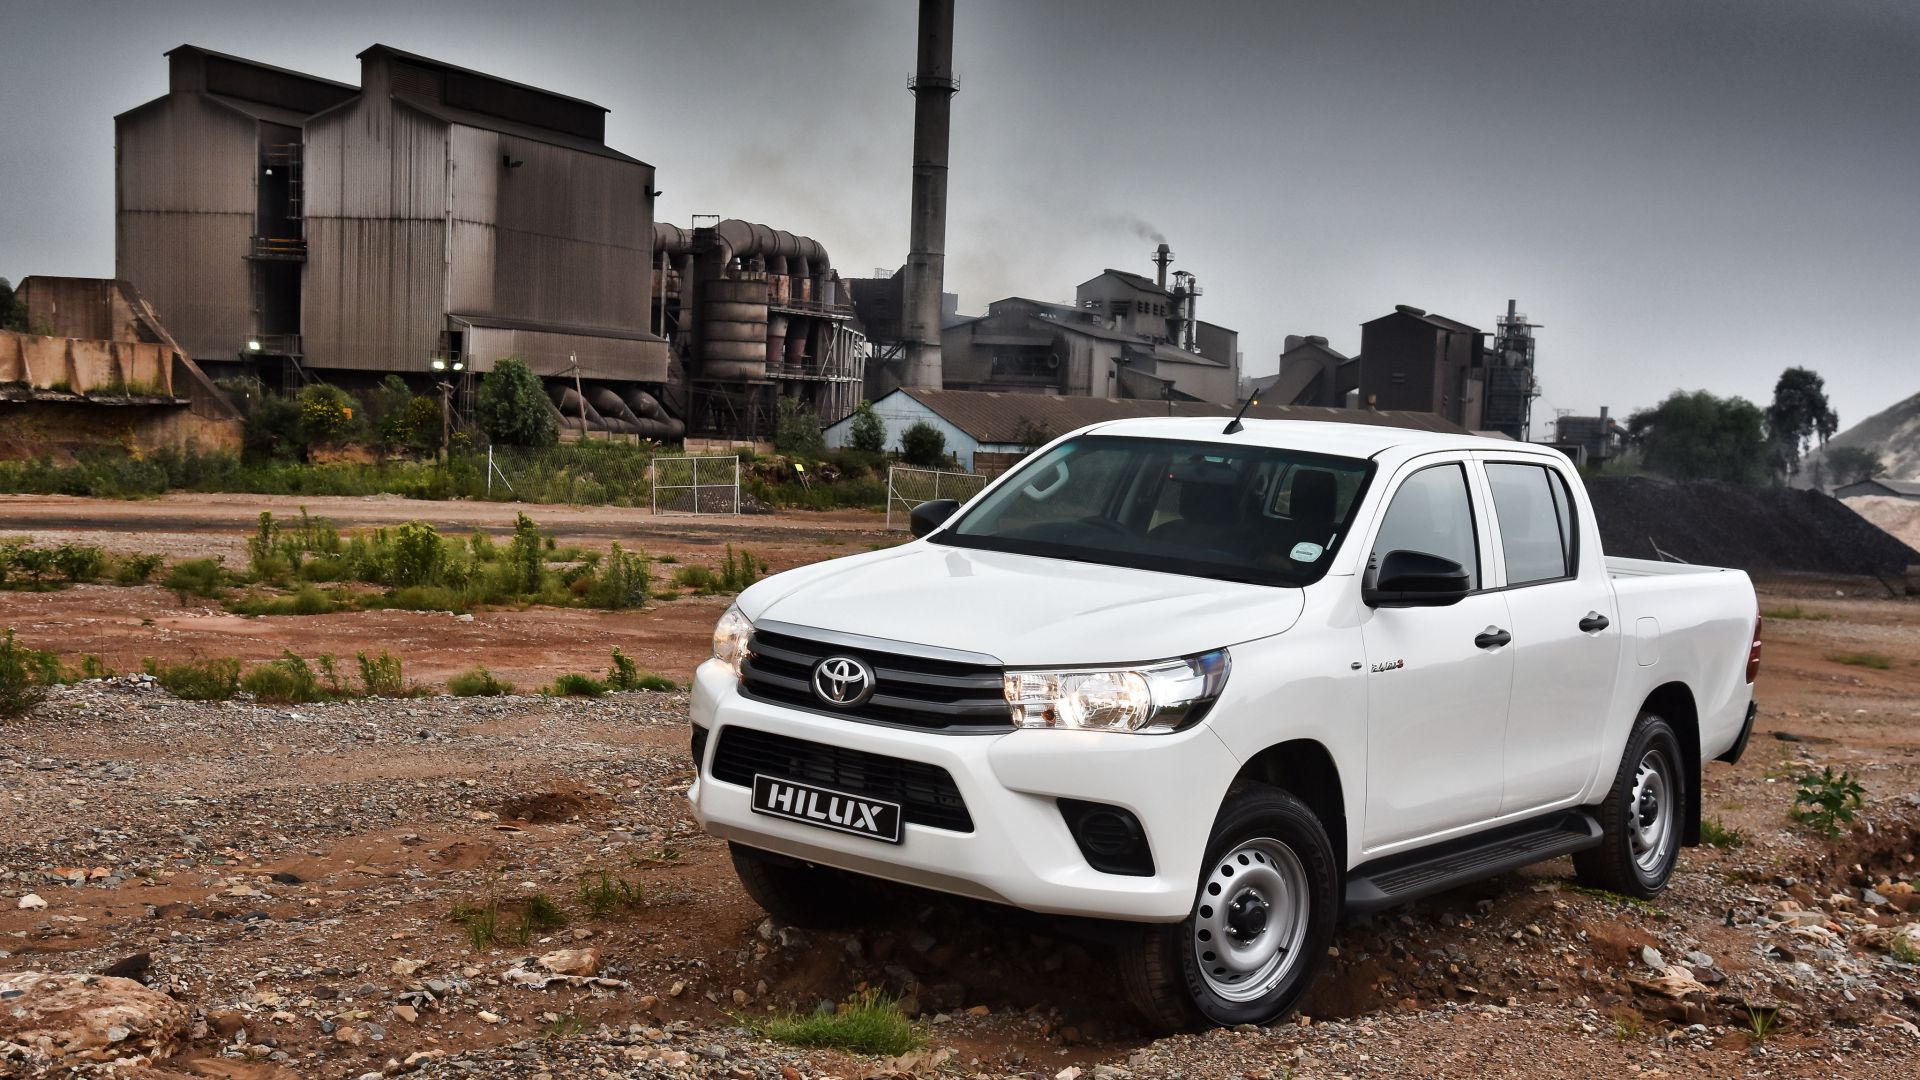 wallpaper toyota hilux 4x4 srx double cab pickup. Black Bedroom Furniture Sets. Home Design Ideas